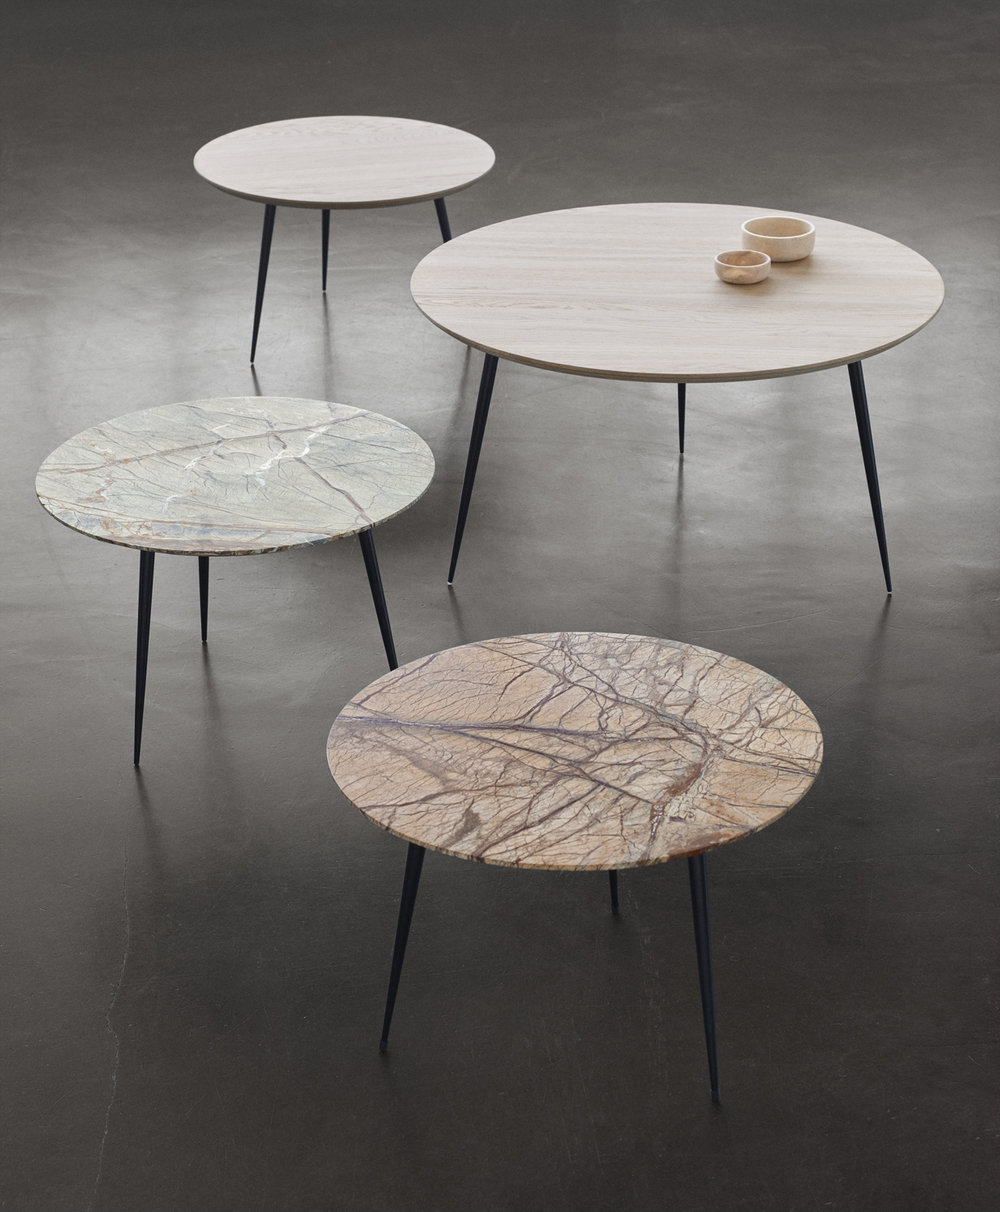 Mater Design Disc table family at Morlen Sinoway